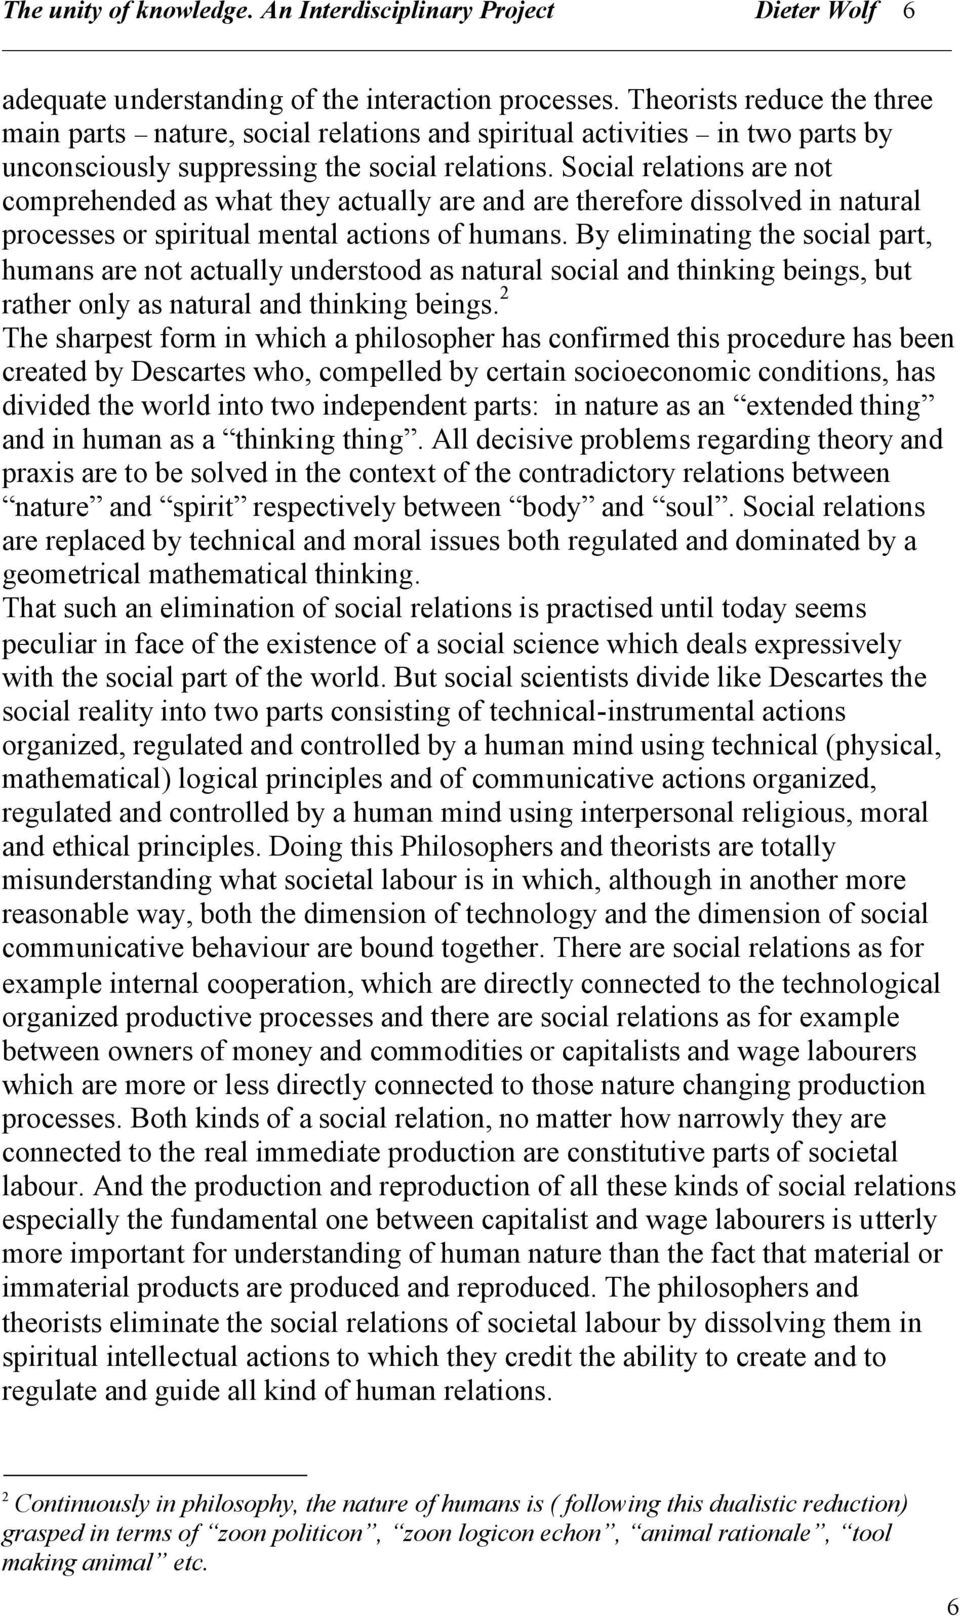 Social relations are not comprehended as what they actually are and are therefore dissolved in natural processes or spiritual mental actions of humans.